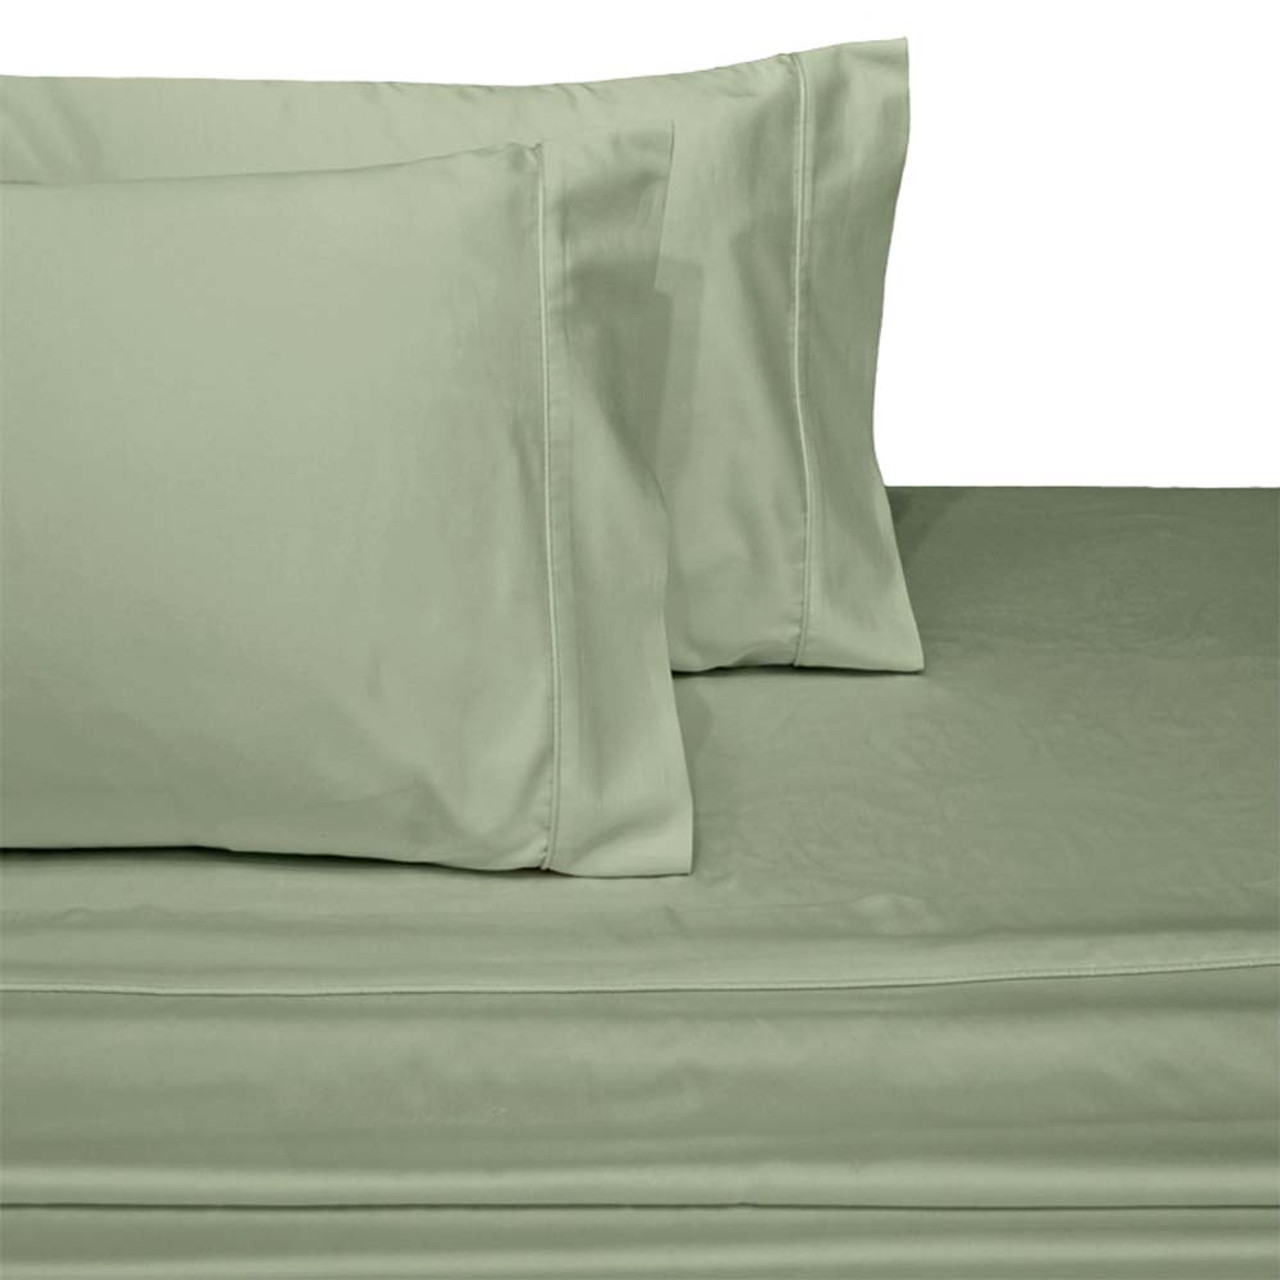 ... Luxury Cotton 600 Thread Count Solid Bed Sheets  ...